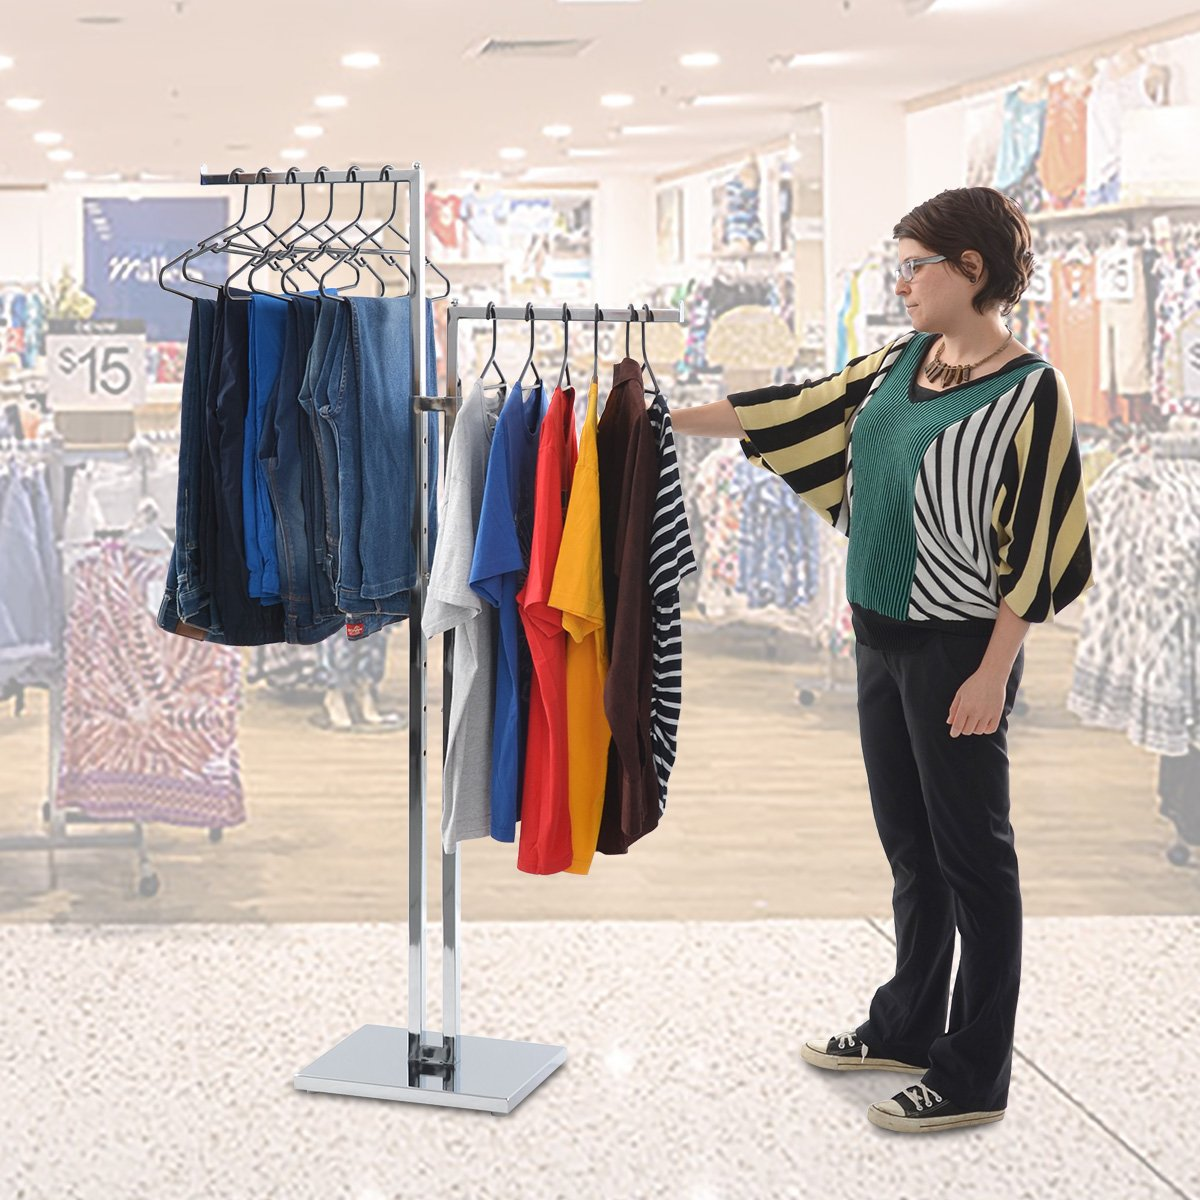 Keep your boutique organised with these clothing racks this Mother's Day whilst giving your customers a pleasant shopping experience. https://t.co/jxVOJ9n6XJ https://t.co/BieHO3Tyxk